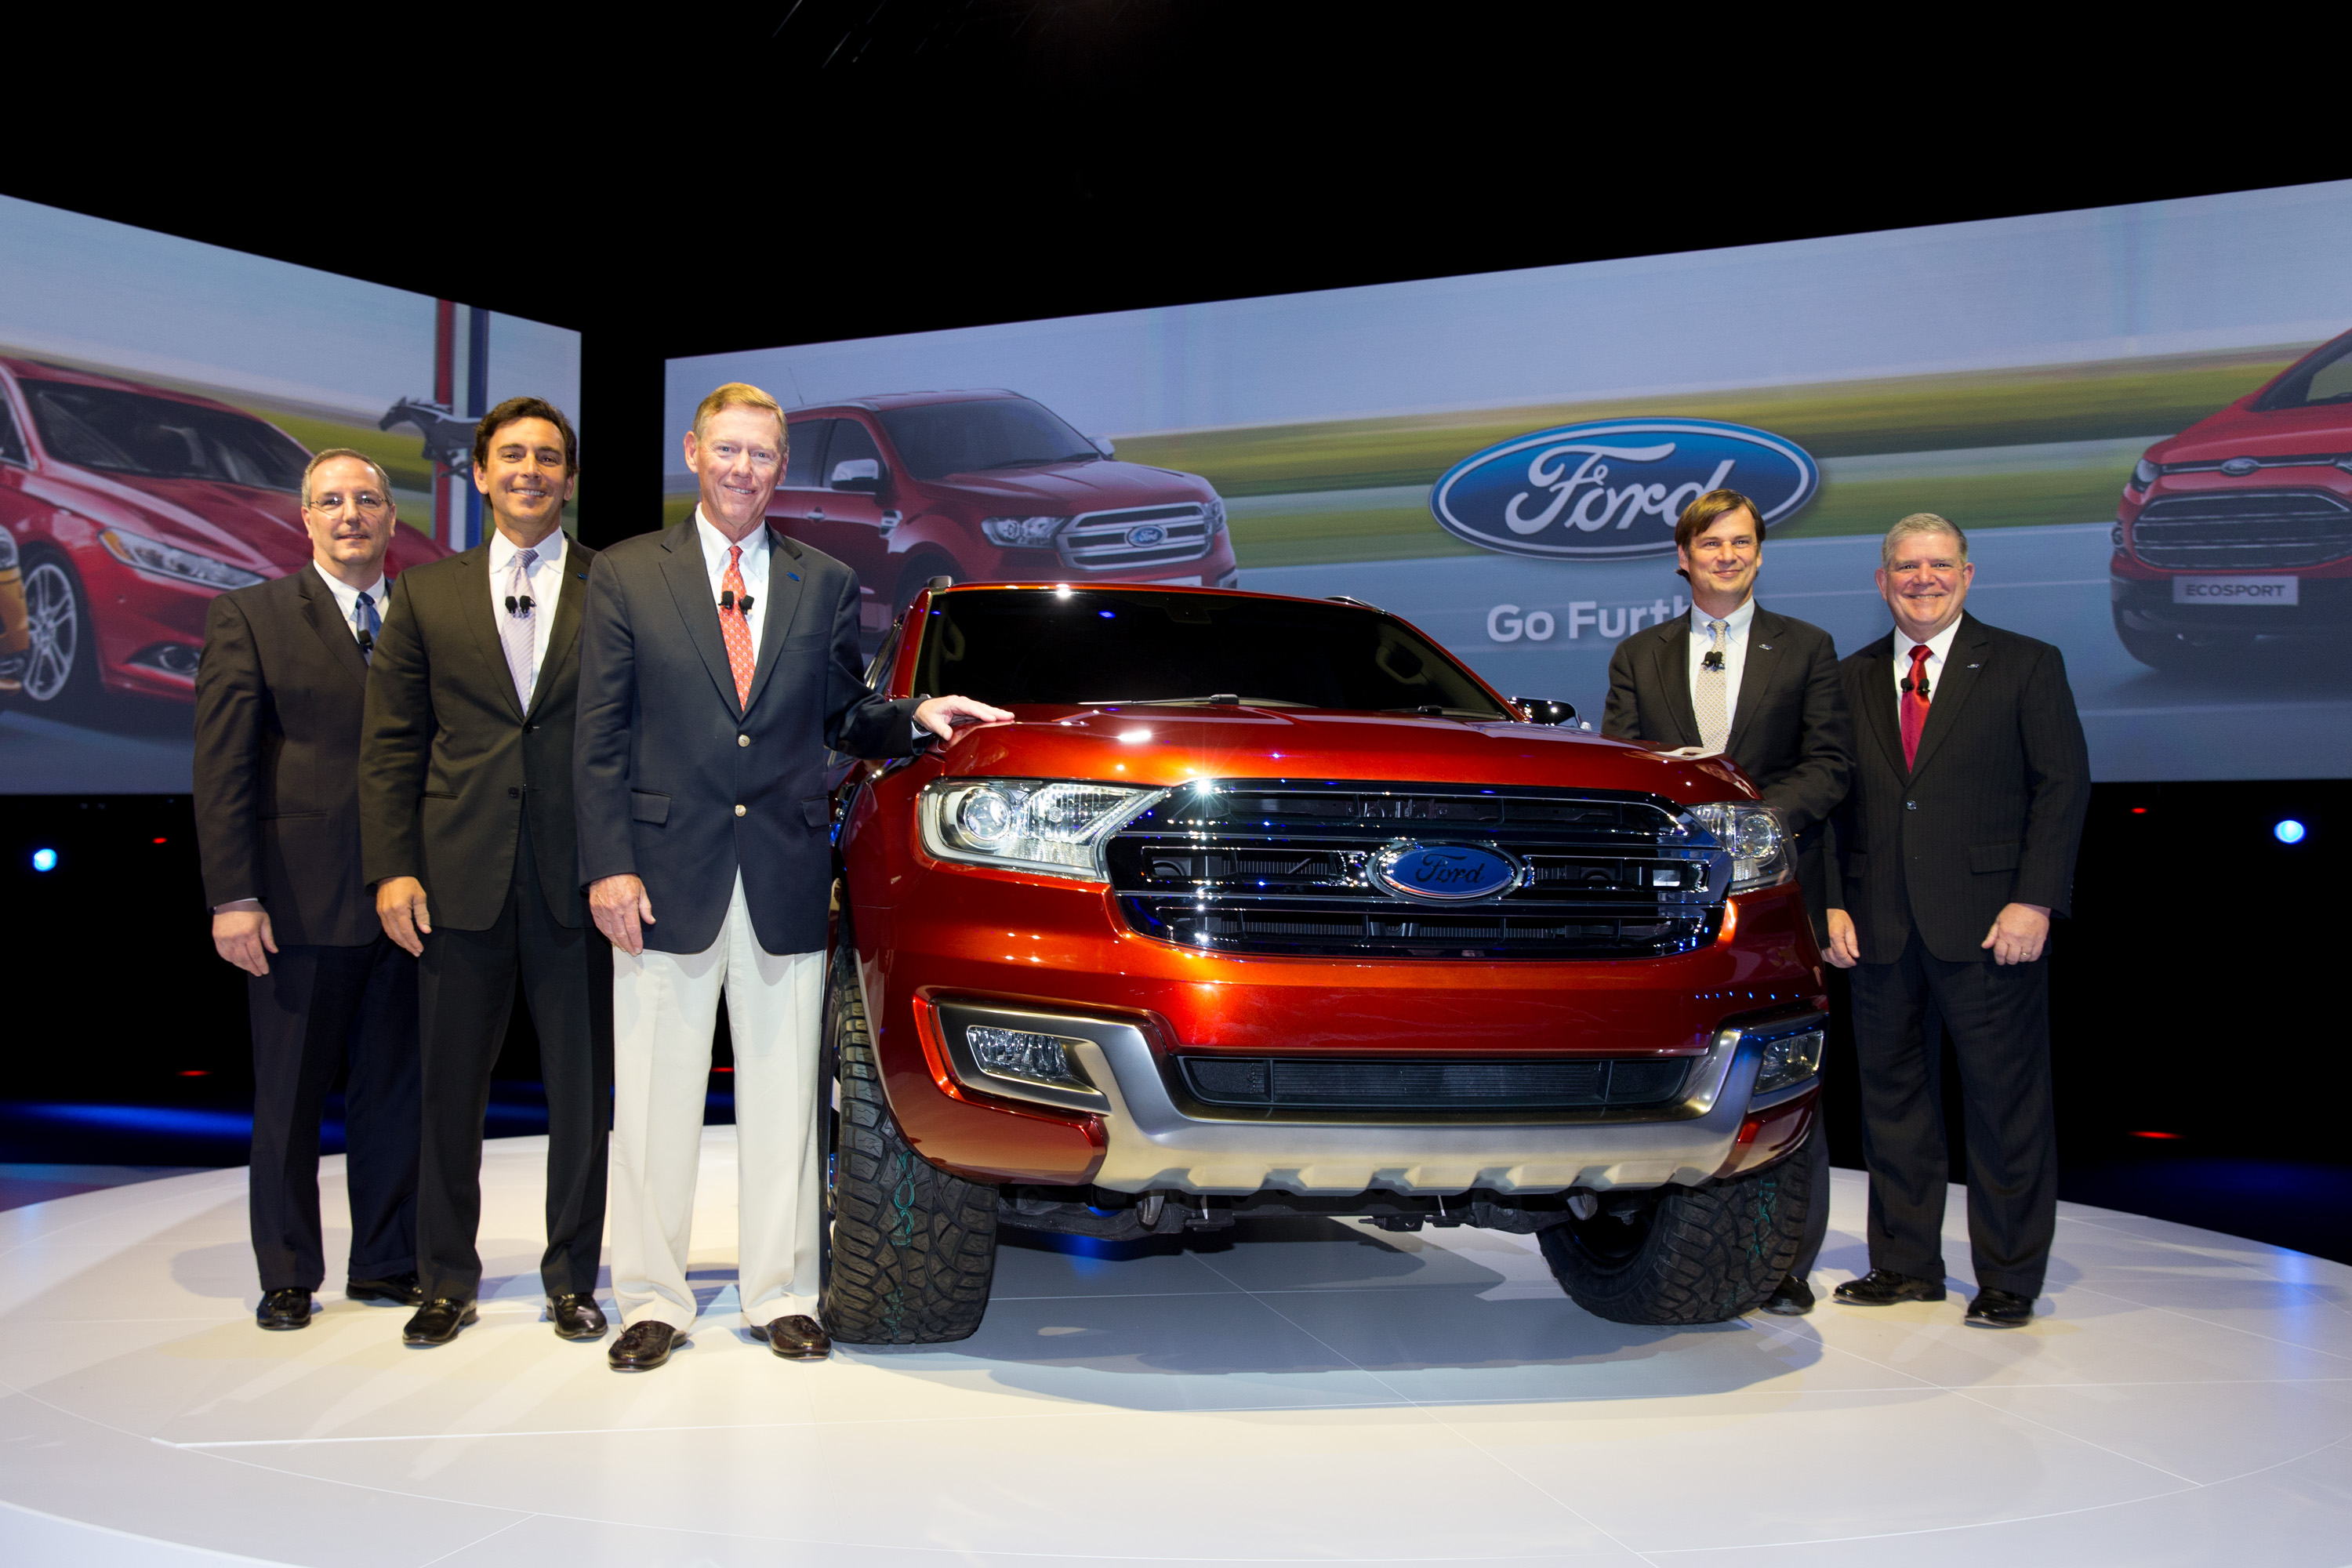 ford_go_further_event_sydney_2013_01